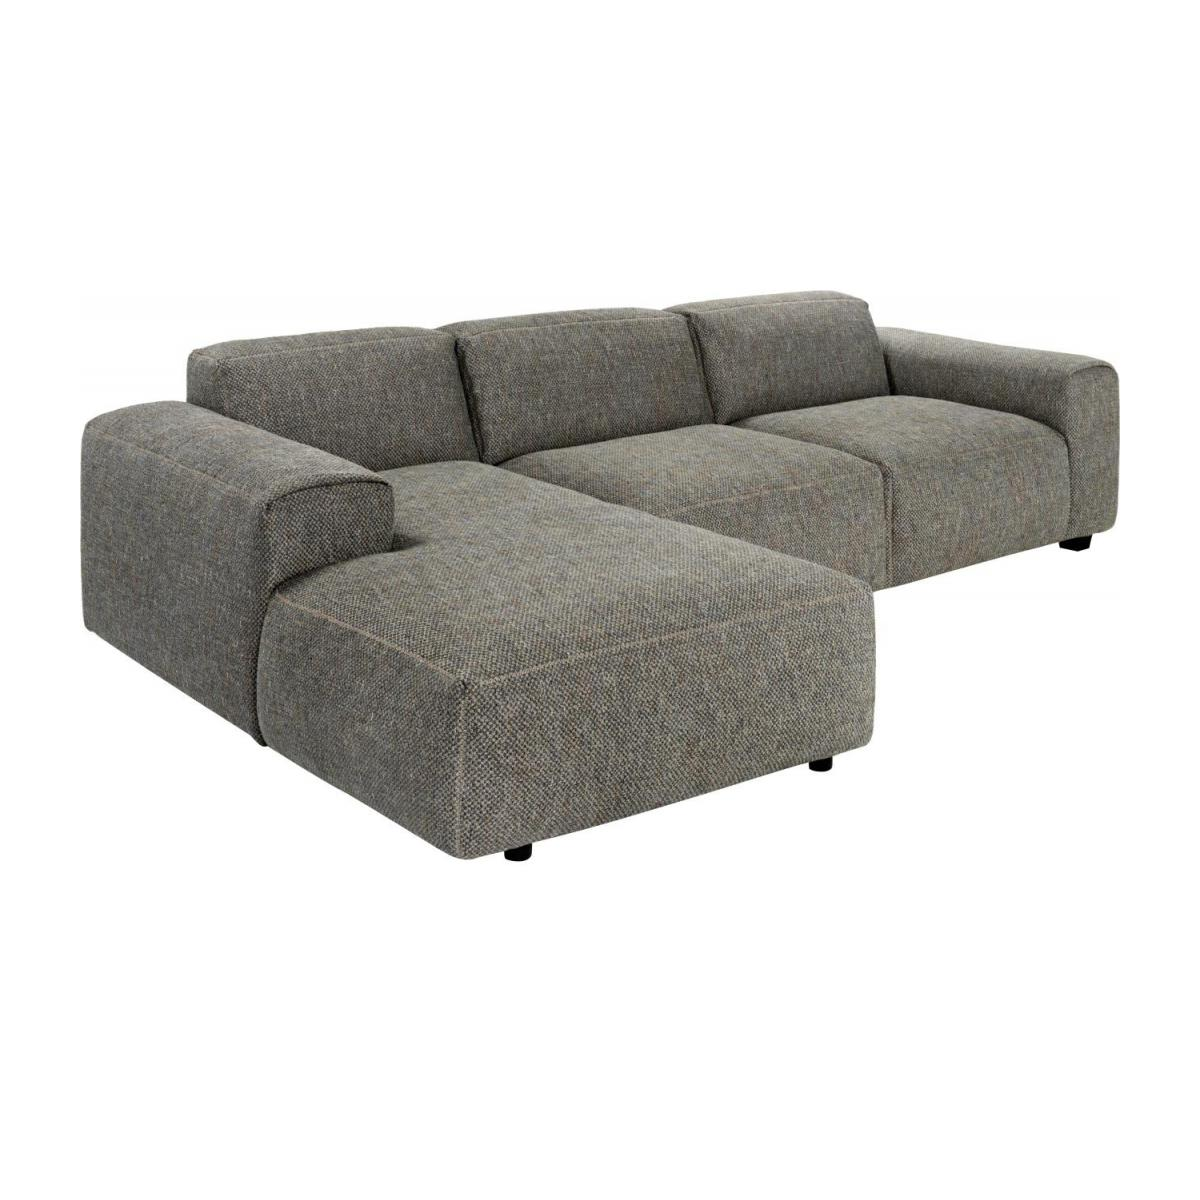 Sofá 3 plazas con chaiselongue izquierda de tela Bellagio night black n°1